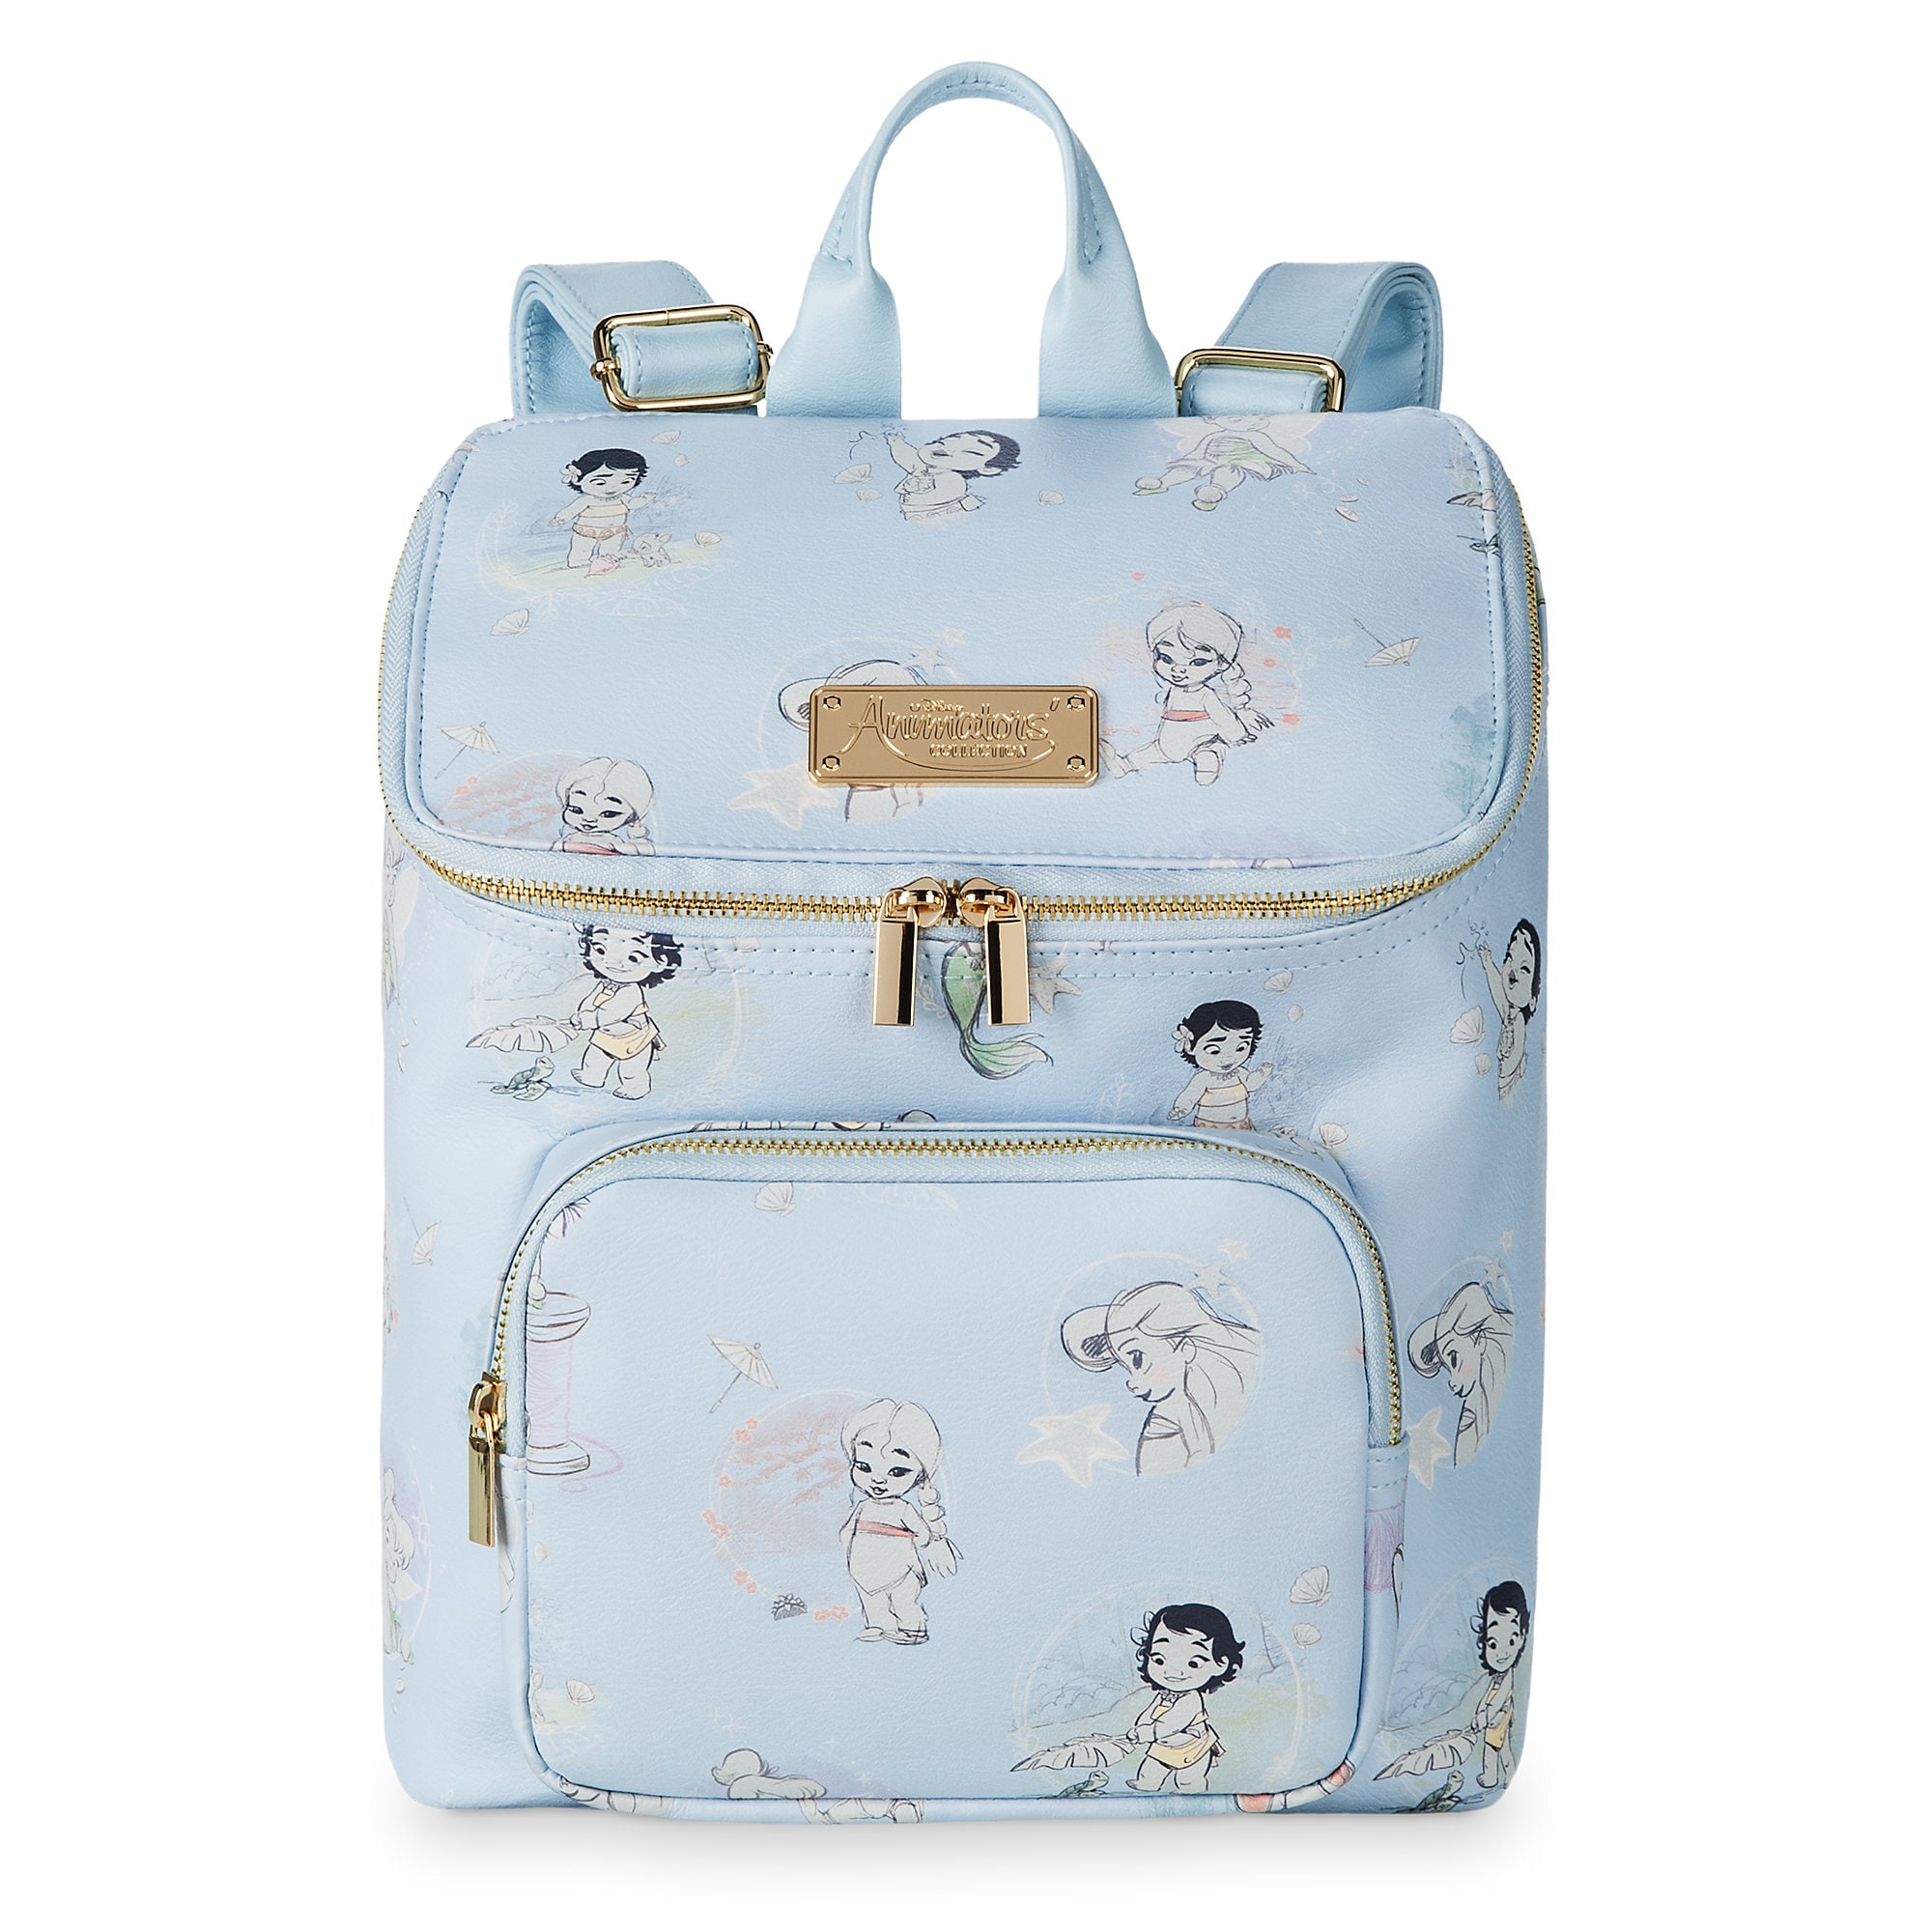 Disney Princess Disney Animators' Collection Backpack